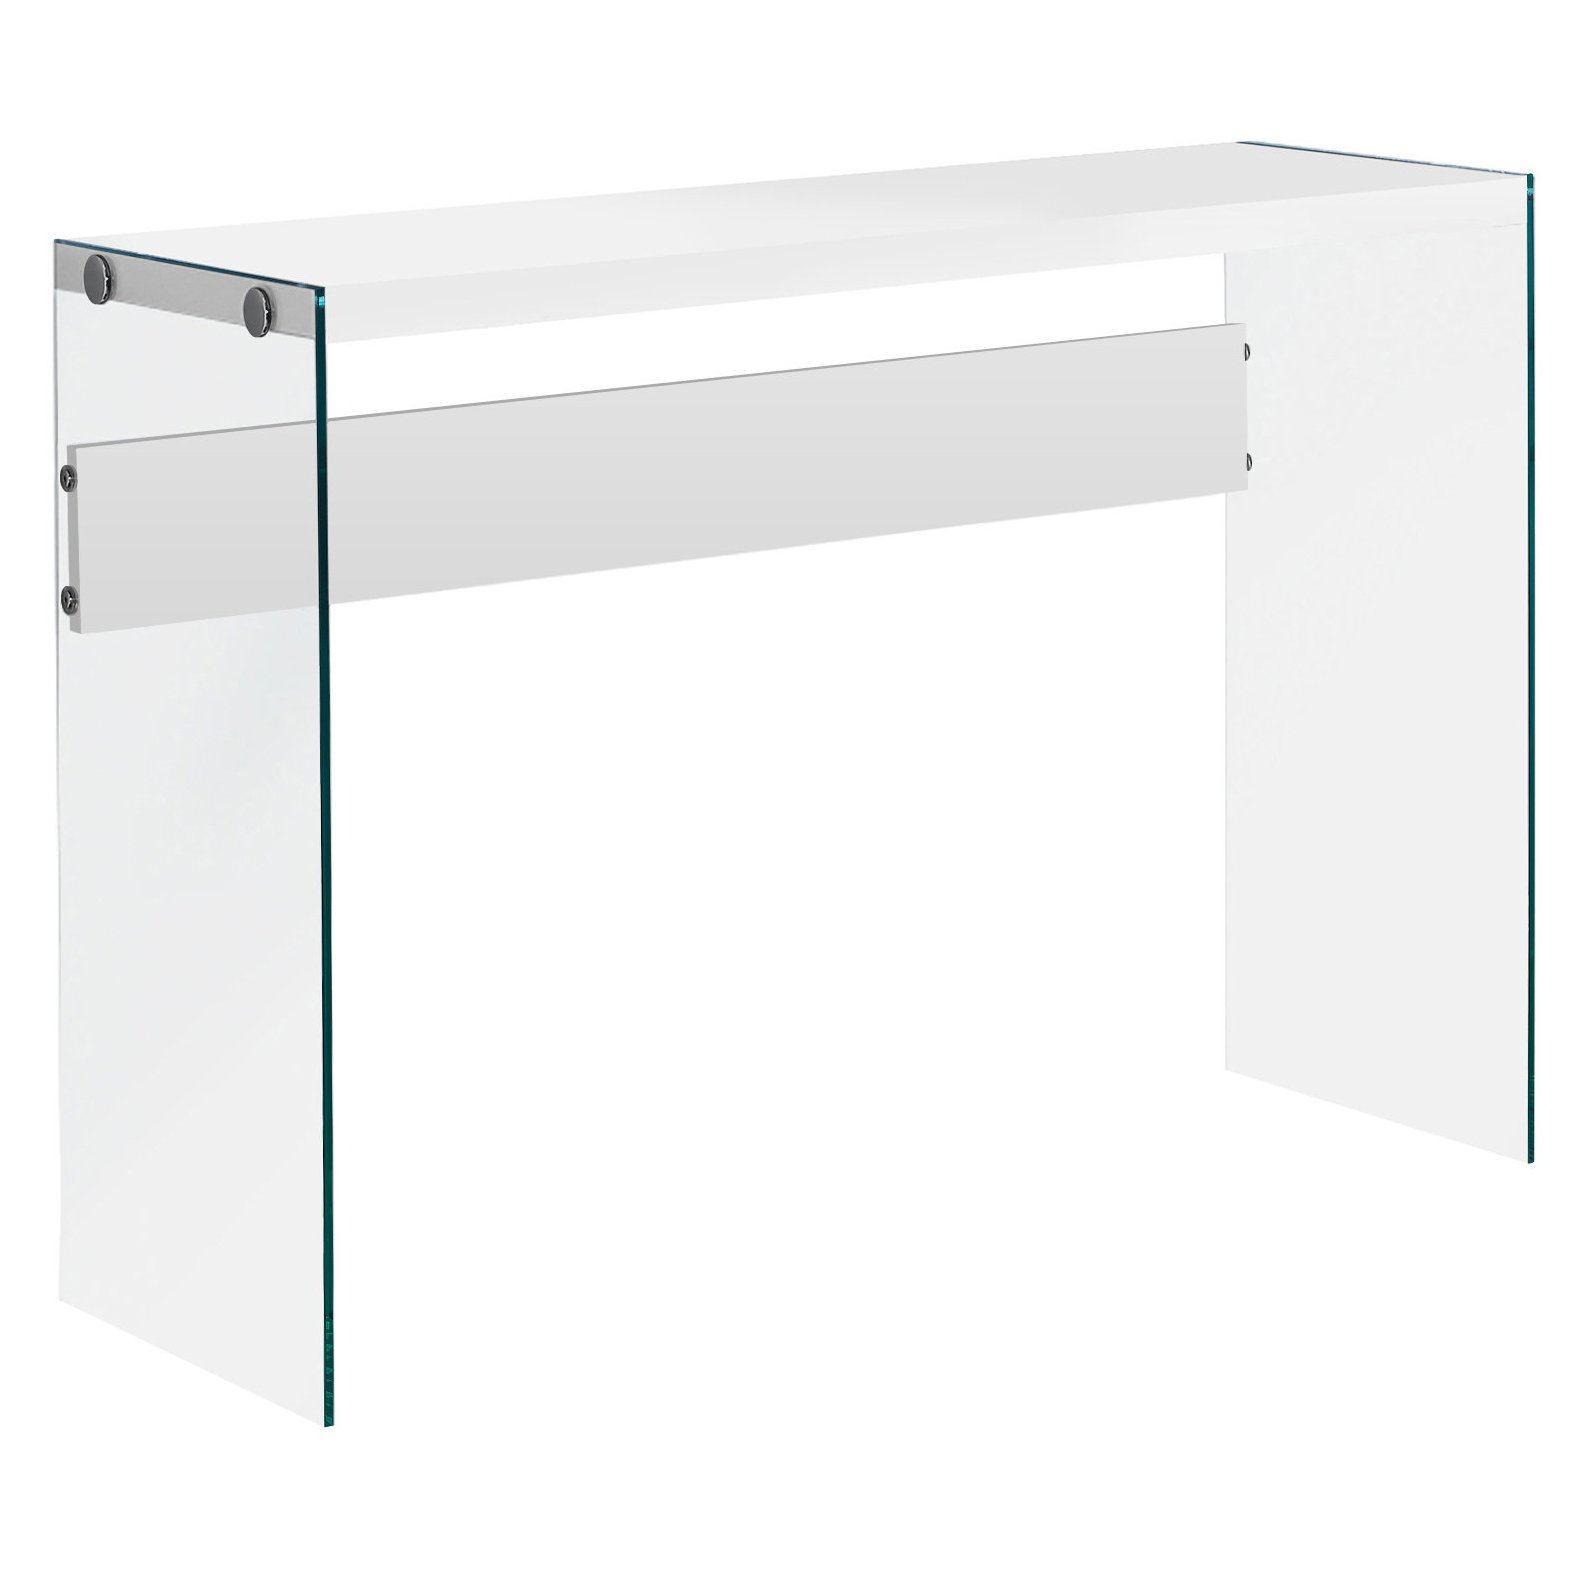 Monarch specialties I 3288, Console Sofa Table, Tempered Glass, Glossy White, 44''L